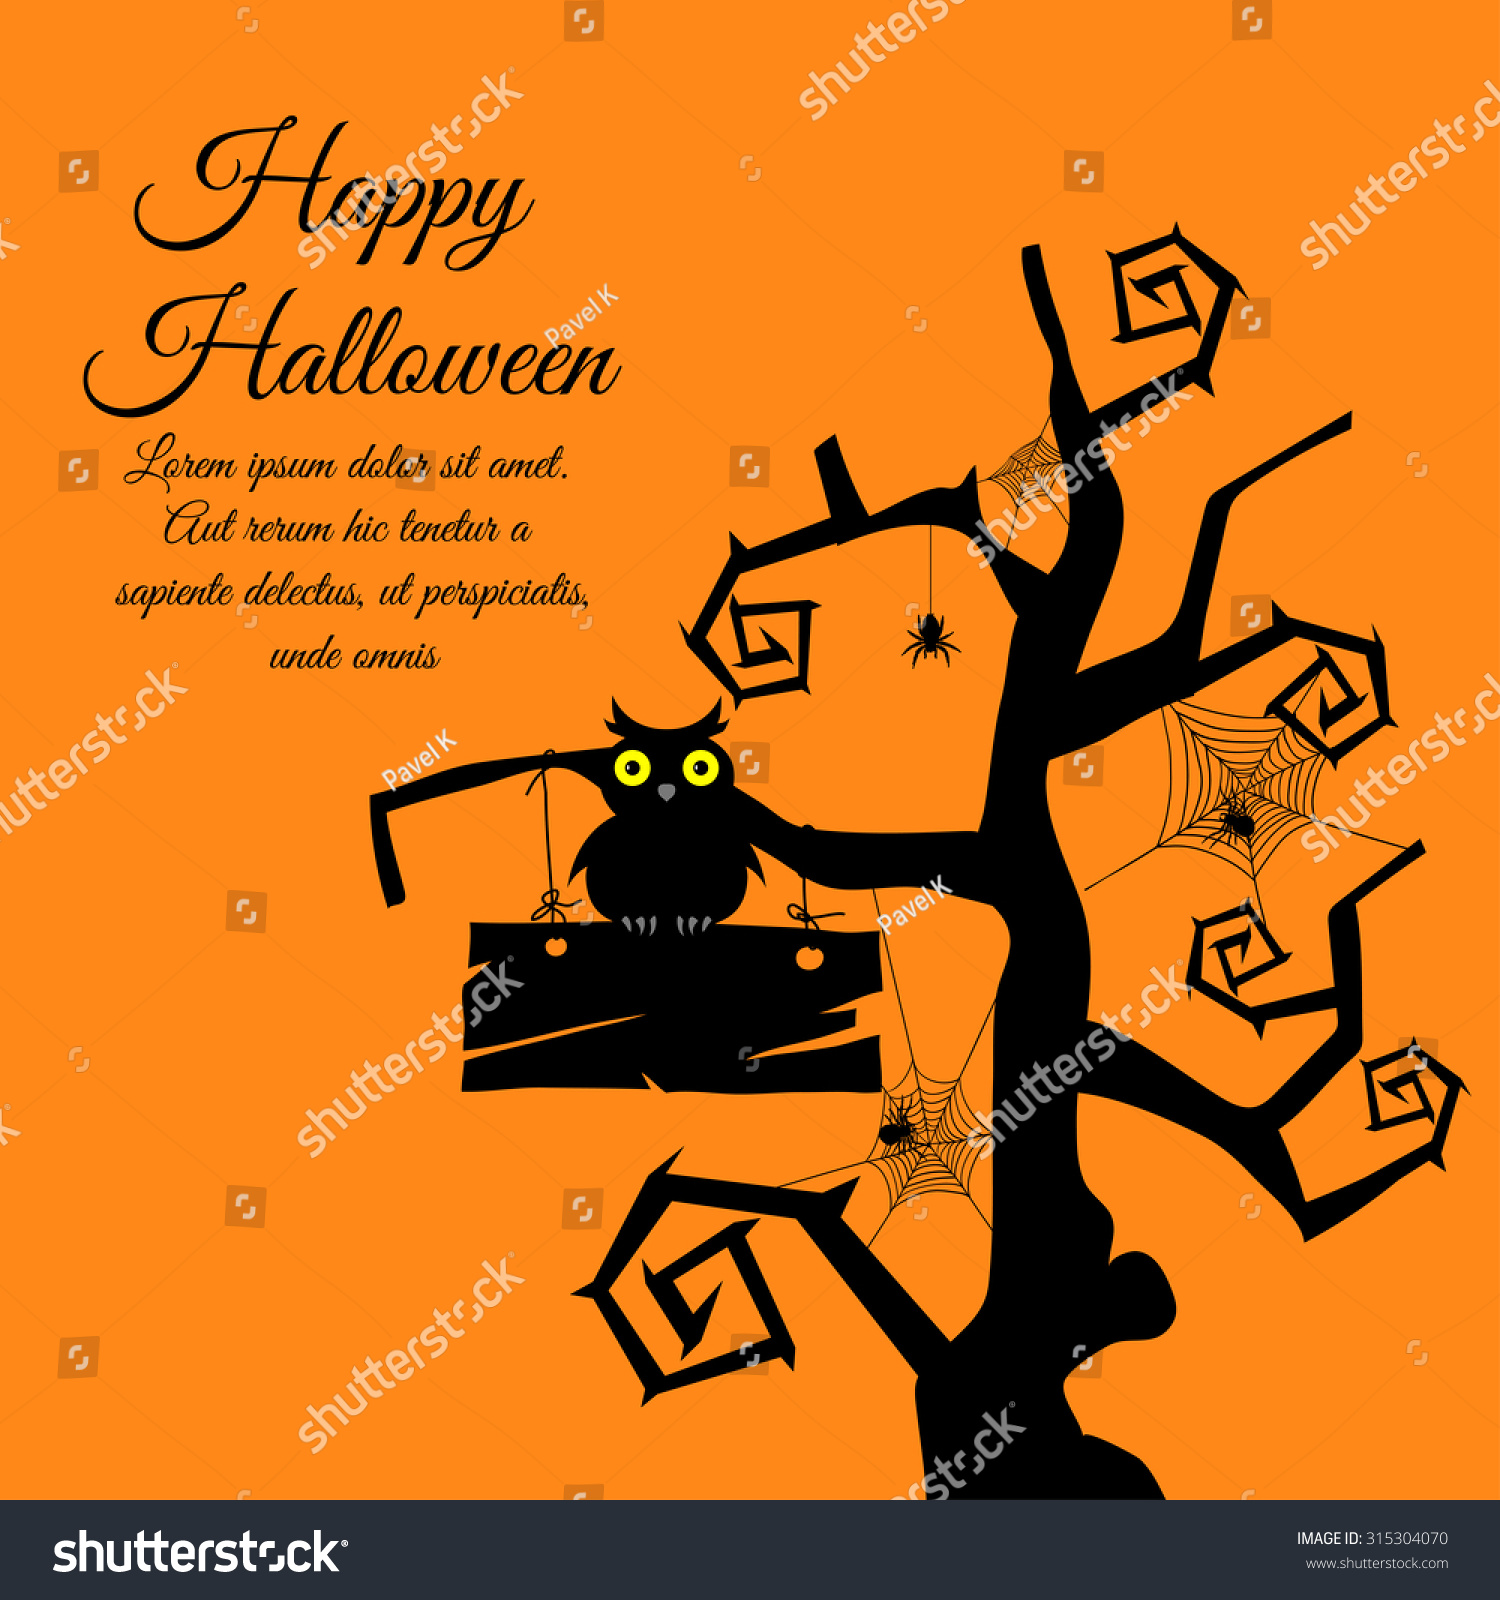 Happy Halloween Greeting Card. Elegant Design With Gothic ...